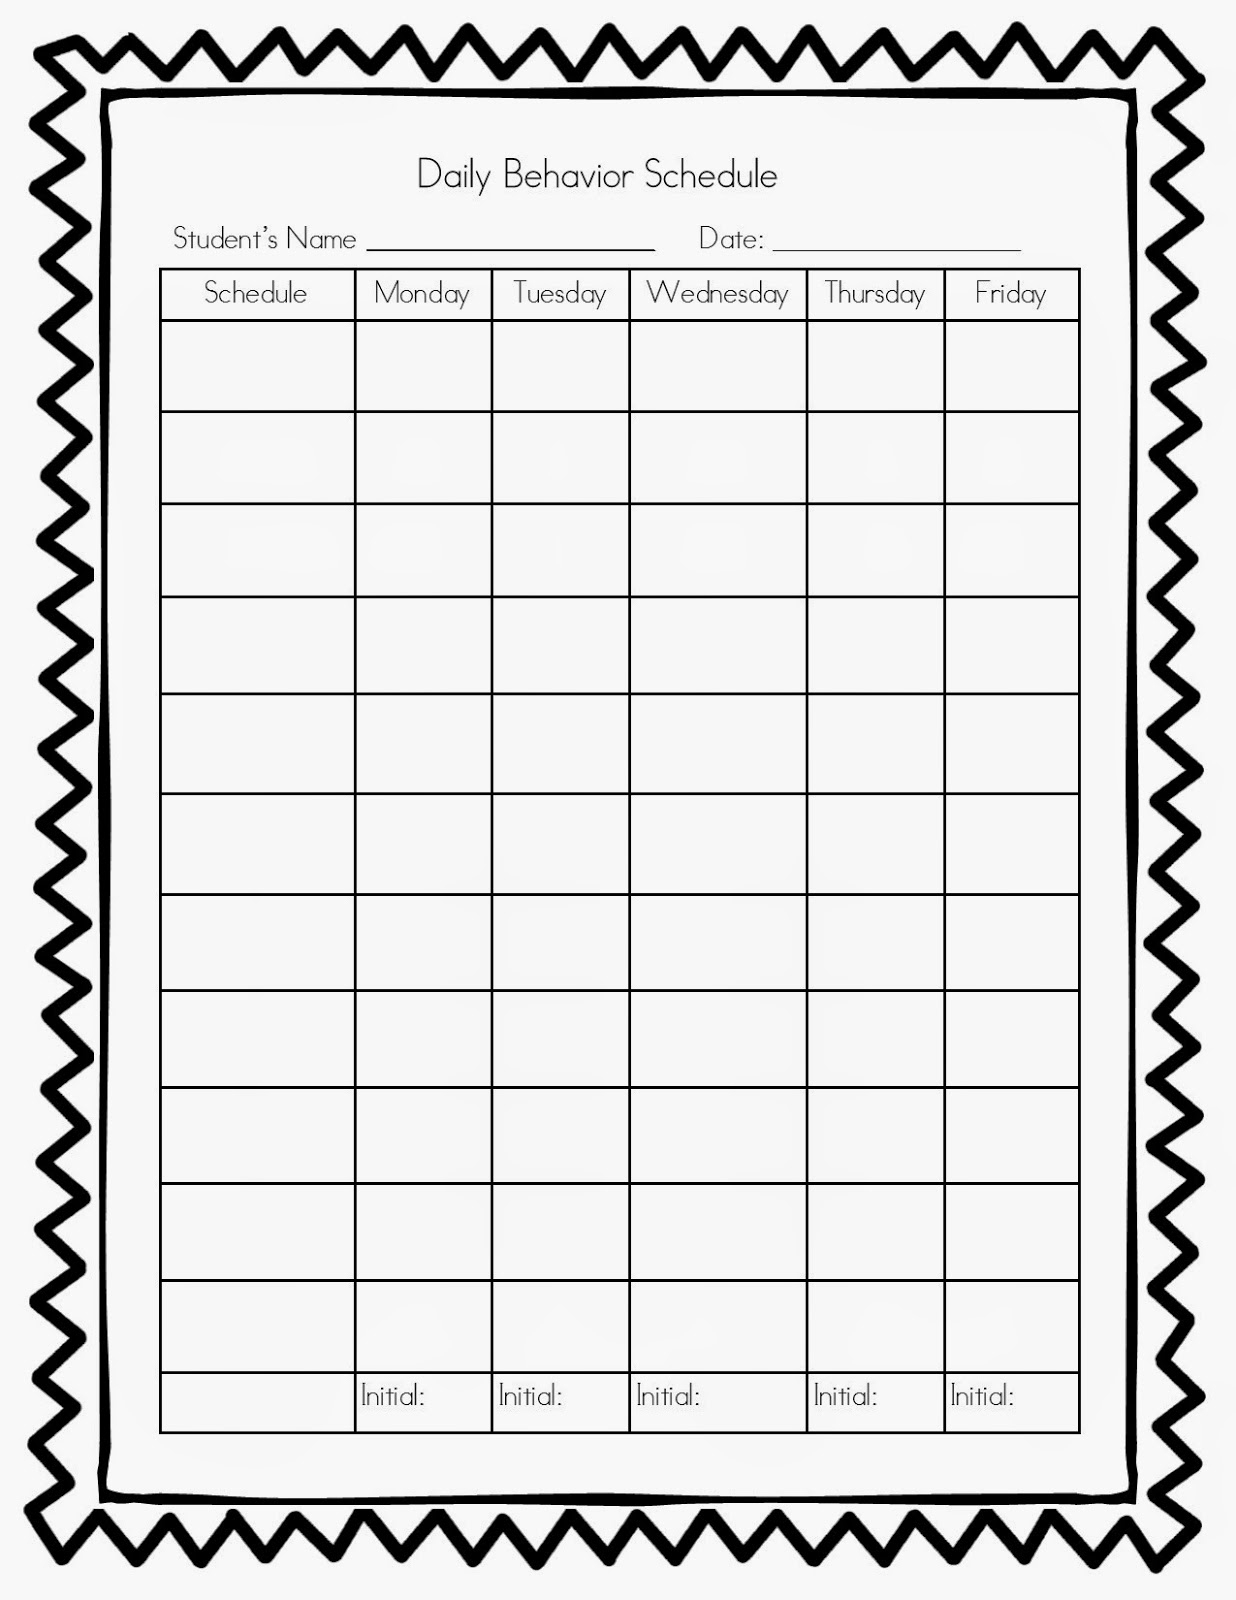 Free Printable Behavior Charts Pbis | Template Calendar Printable throughout Free Printable Behavior Charts Pbis